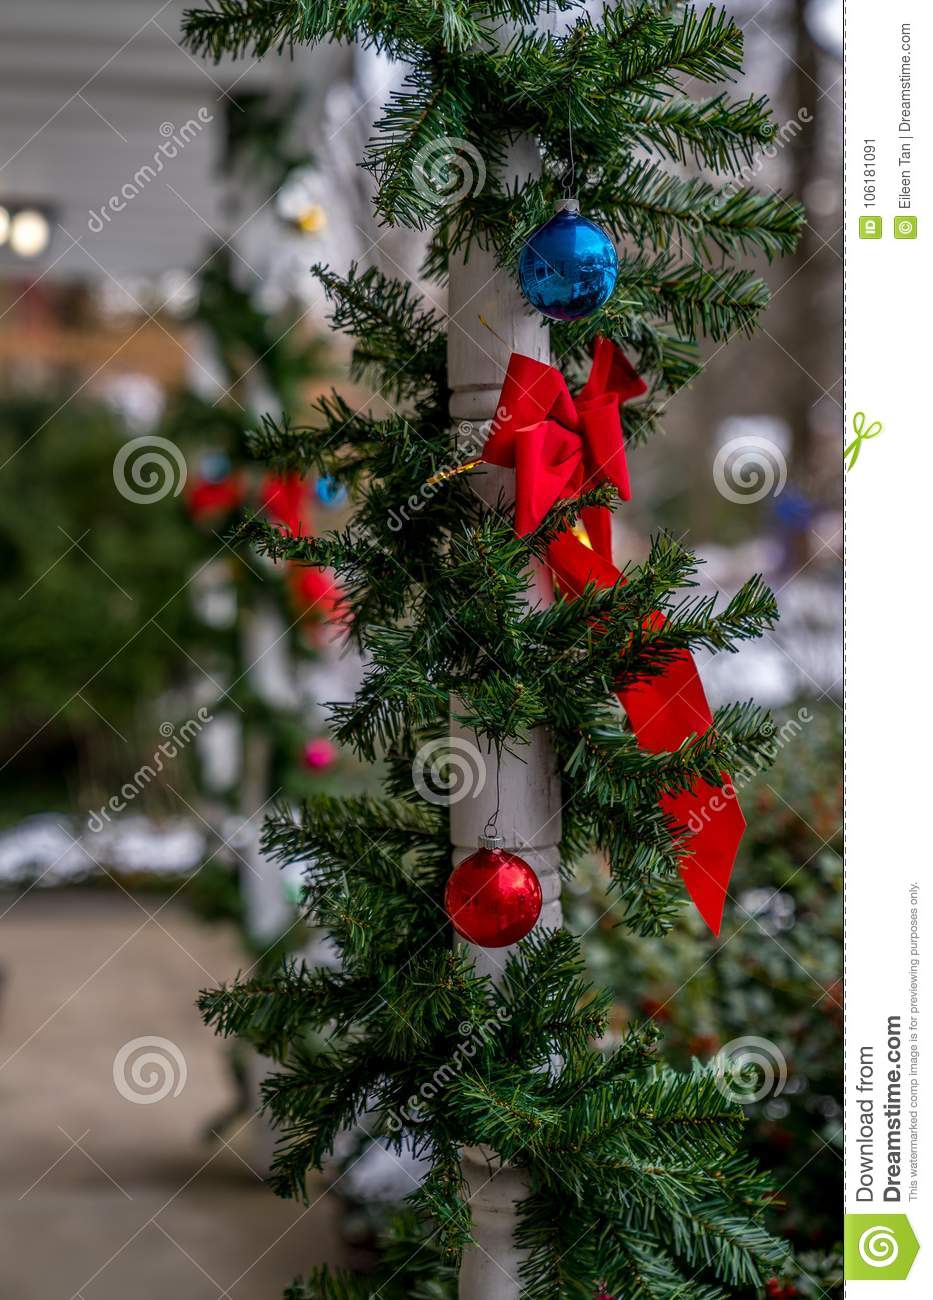 rad bow tie christmas ornaments and evergreen decoration hang on the wood column traditional celebration winter holiday season and christmas concept